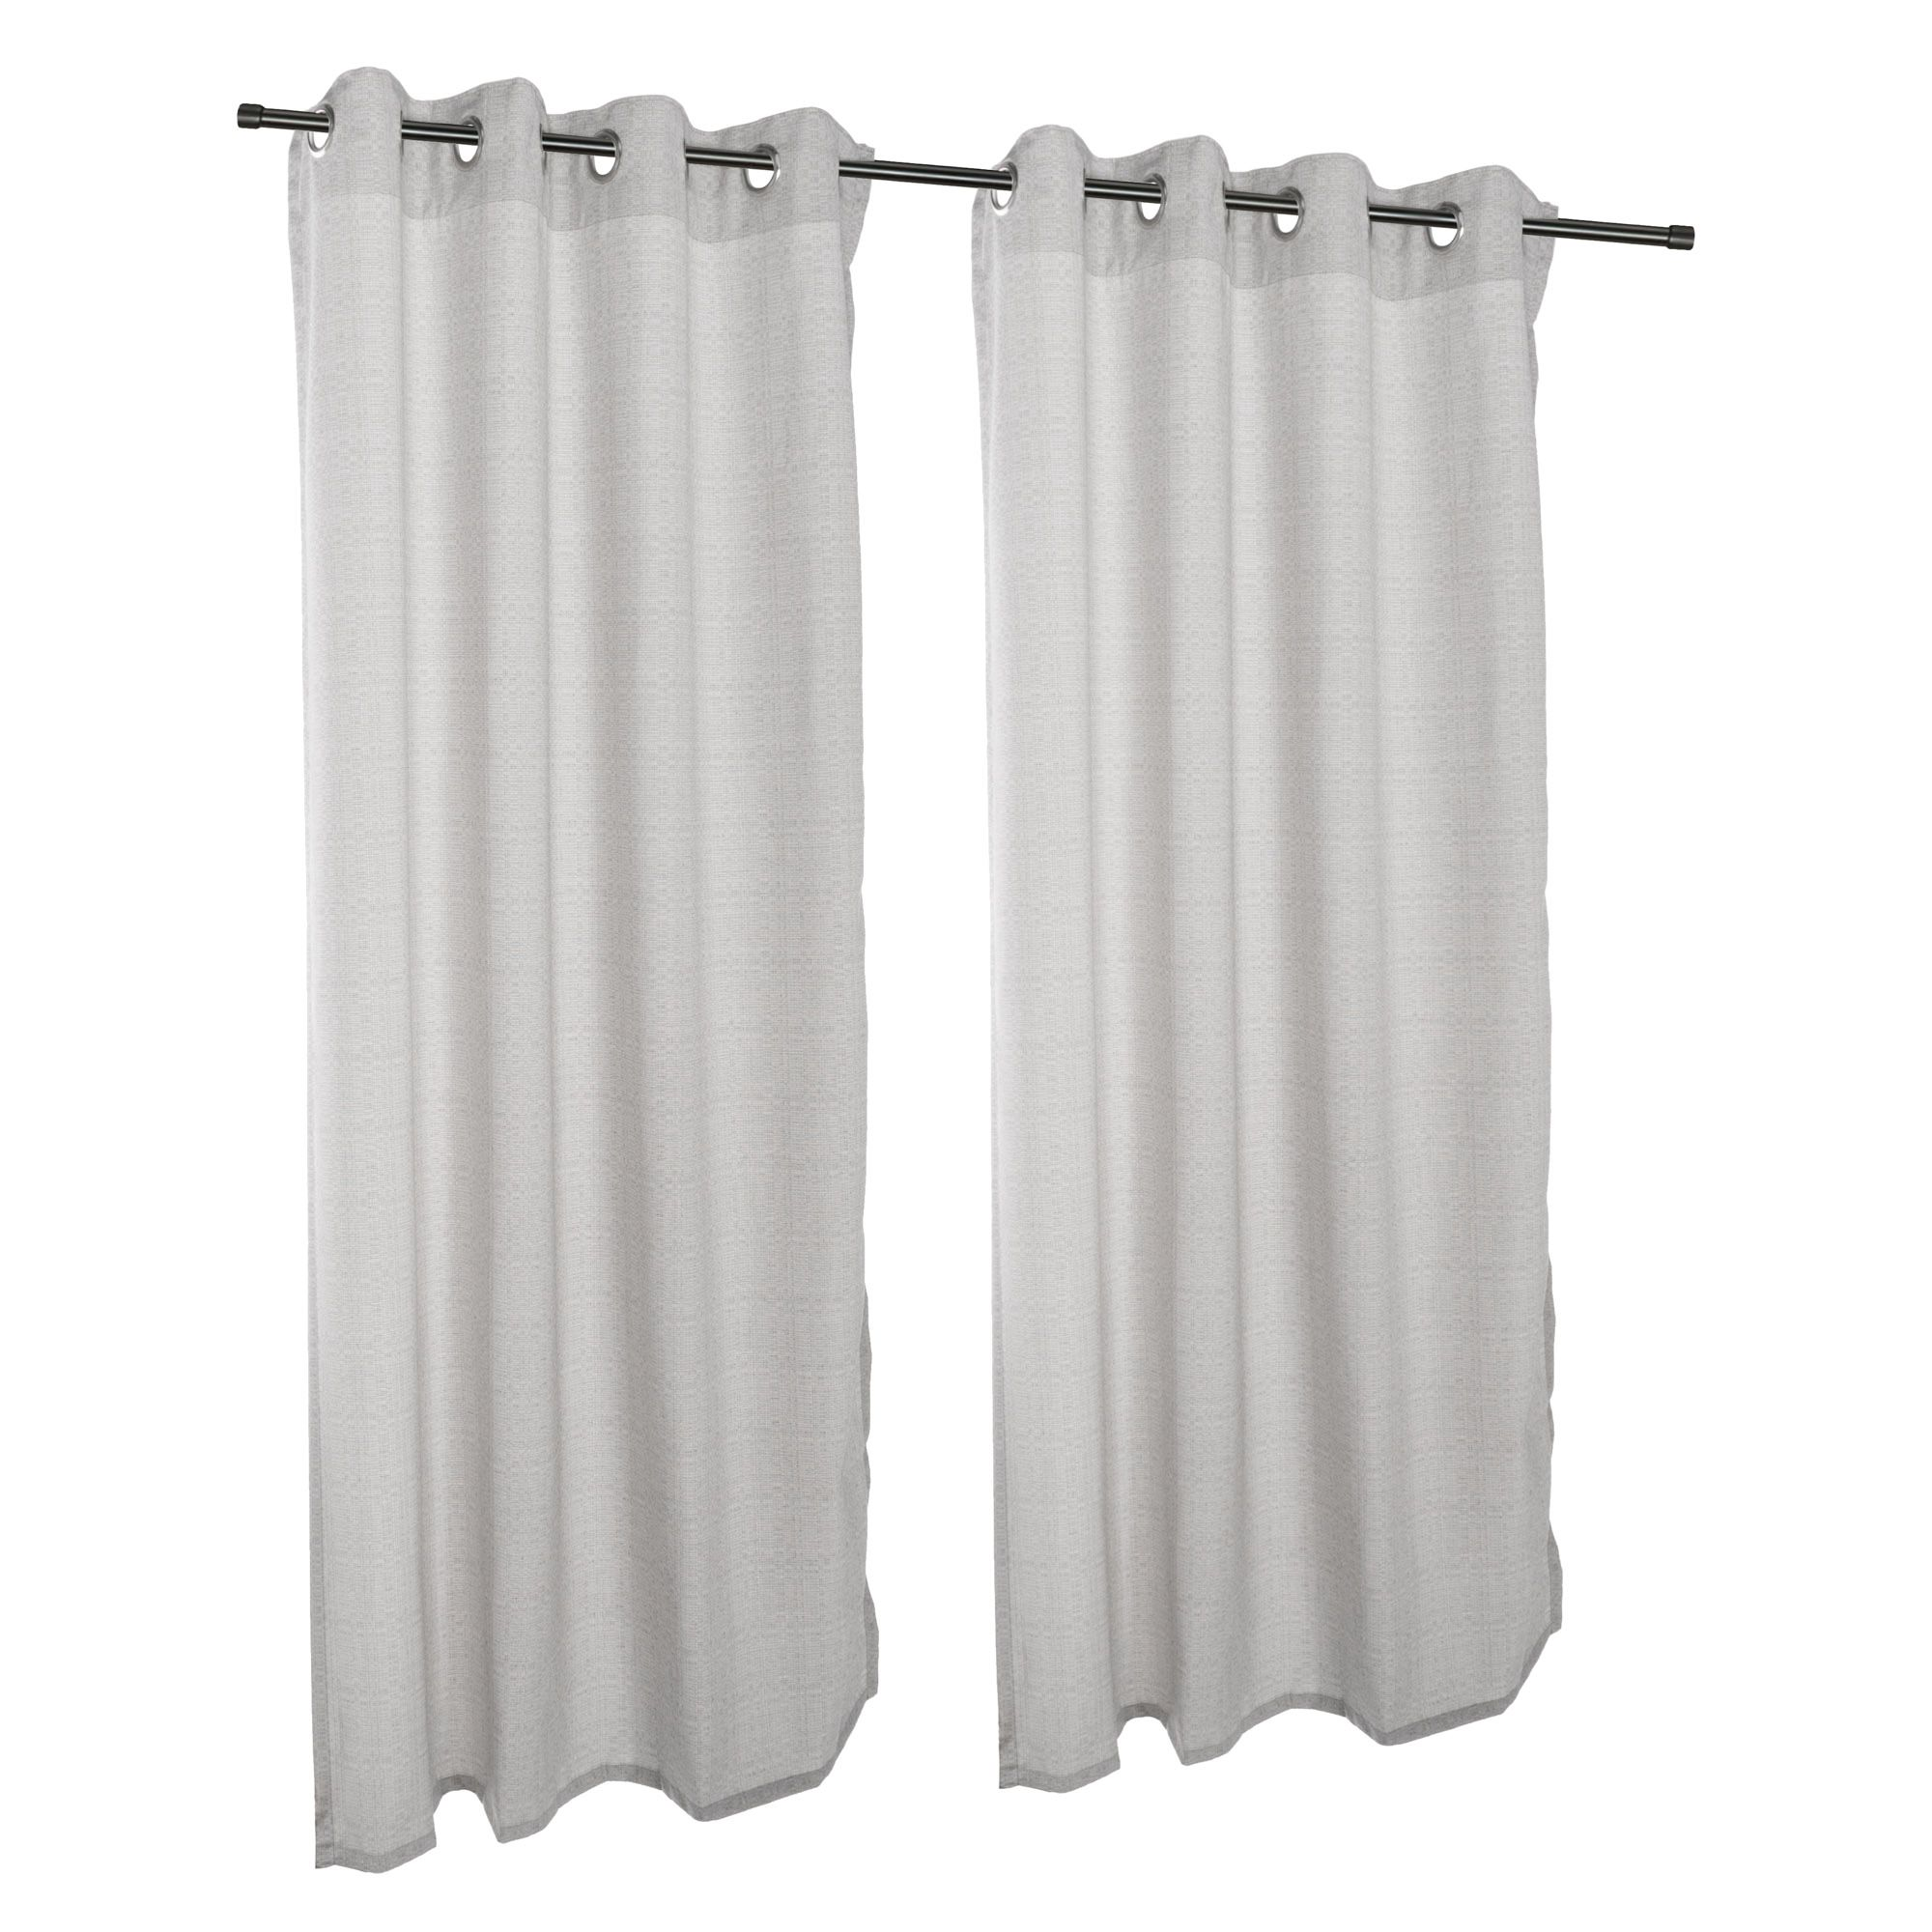 max extreme gray window single panel solid curtains thermal zero treatments theater wayfair blackout curtain home baxter grade reviews sun linen pdx grommet